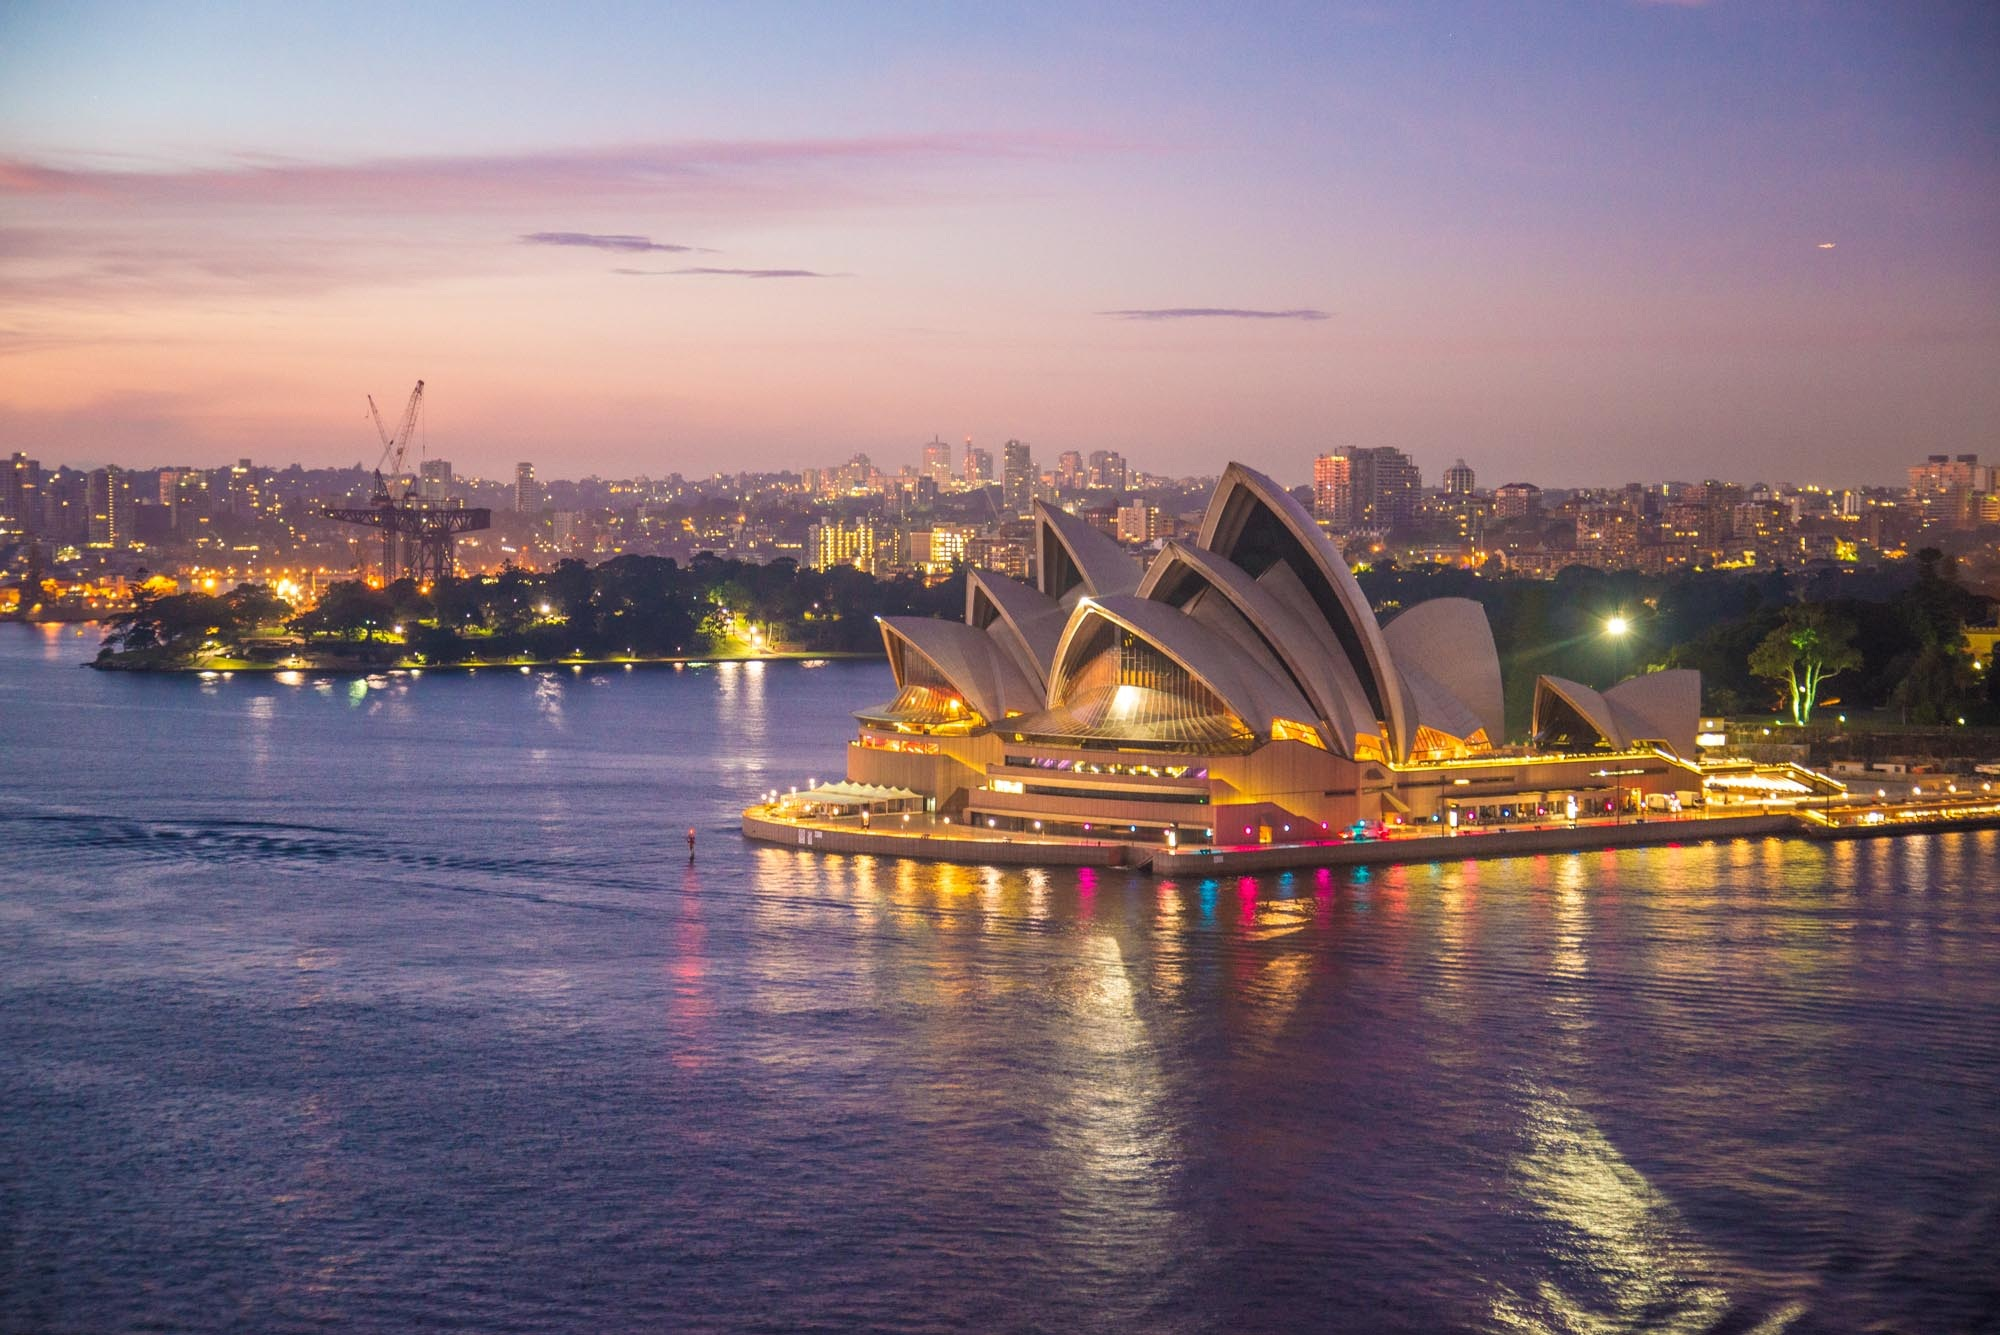 The World's 57 Top Attractions According To Travelers